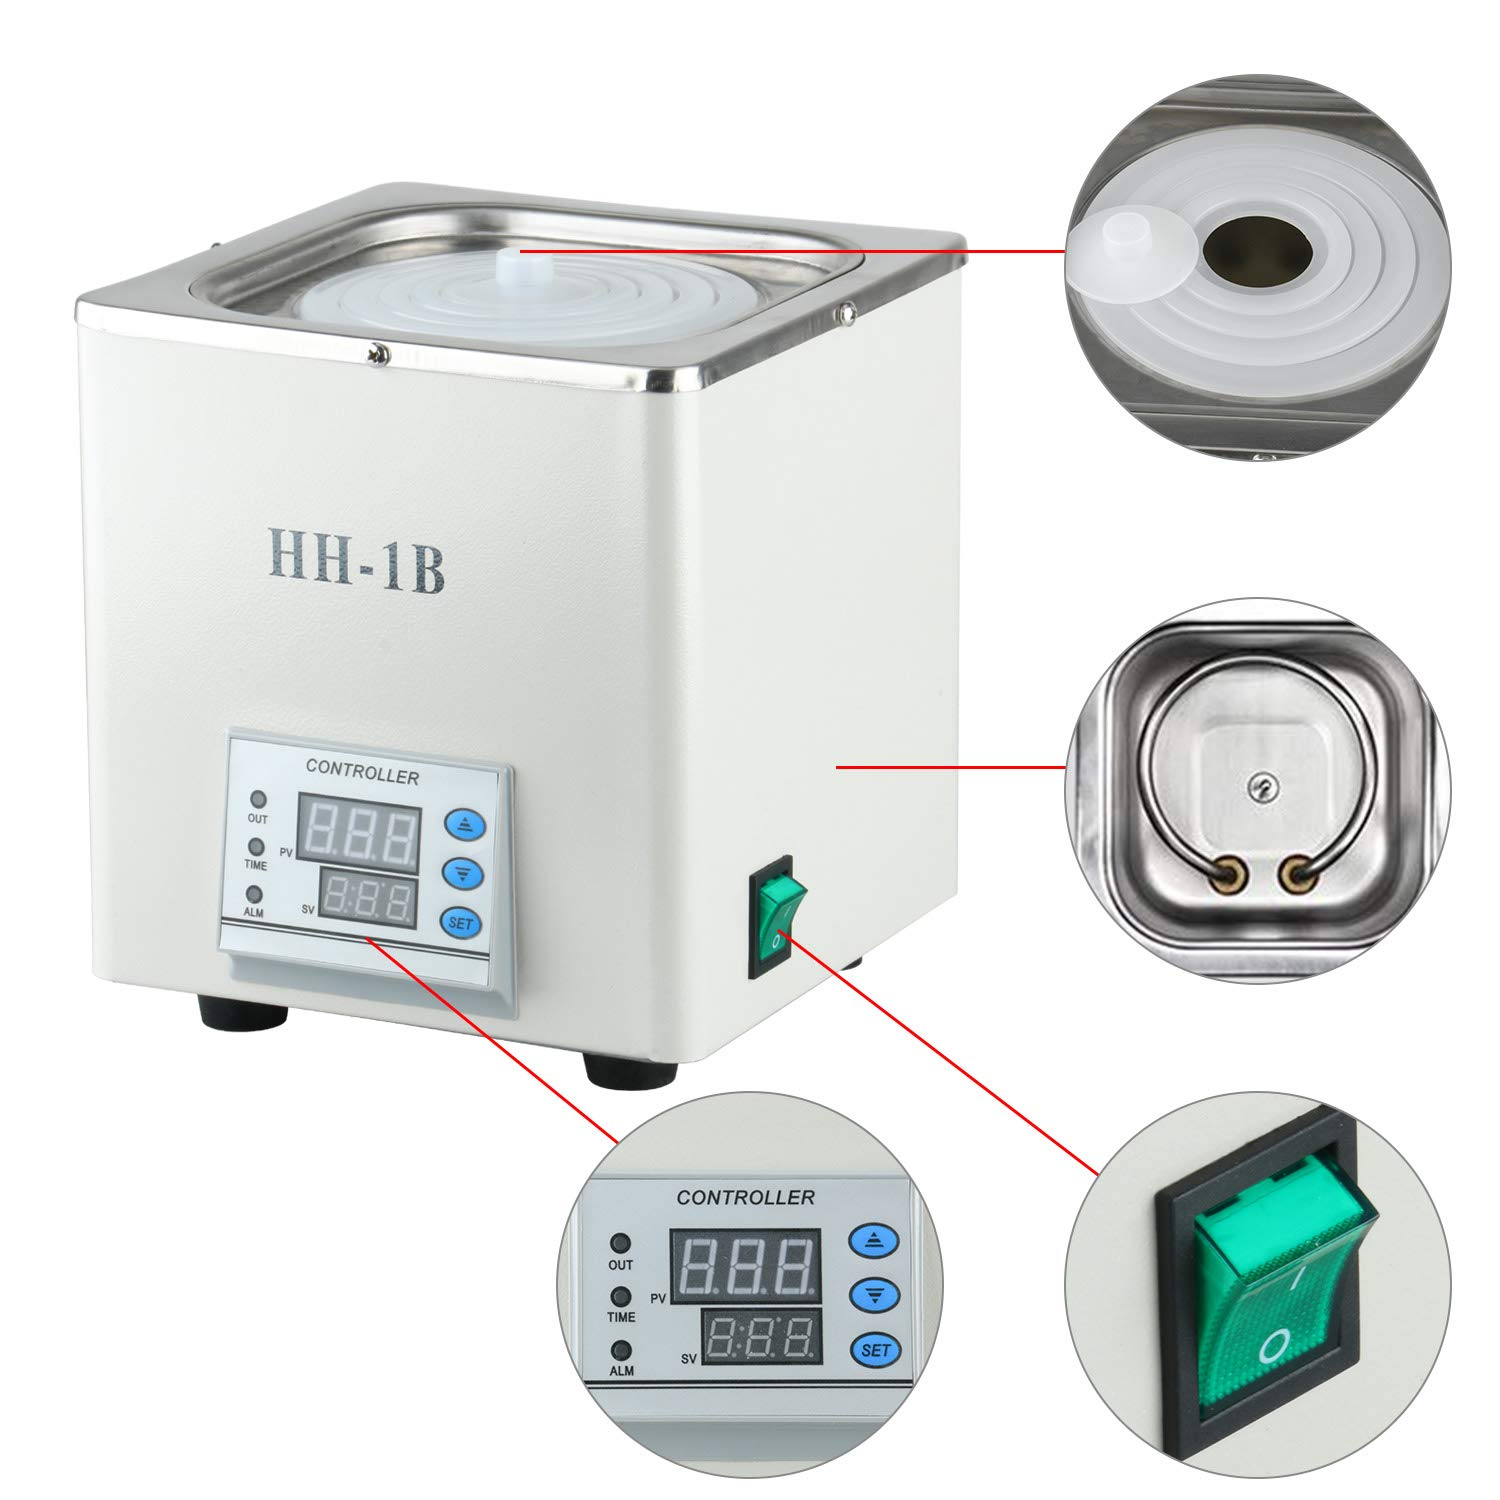 1 Chamber with 2 Openings 110V Faithful Digital Thermostatic Water Bath